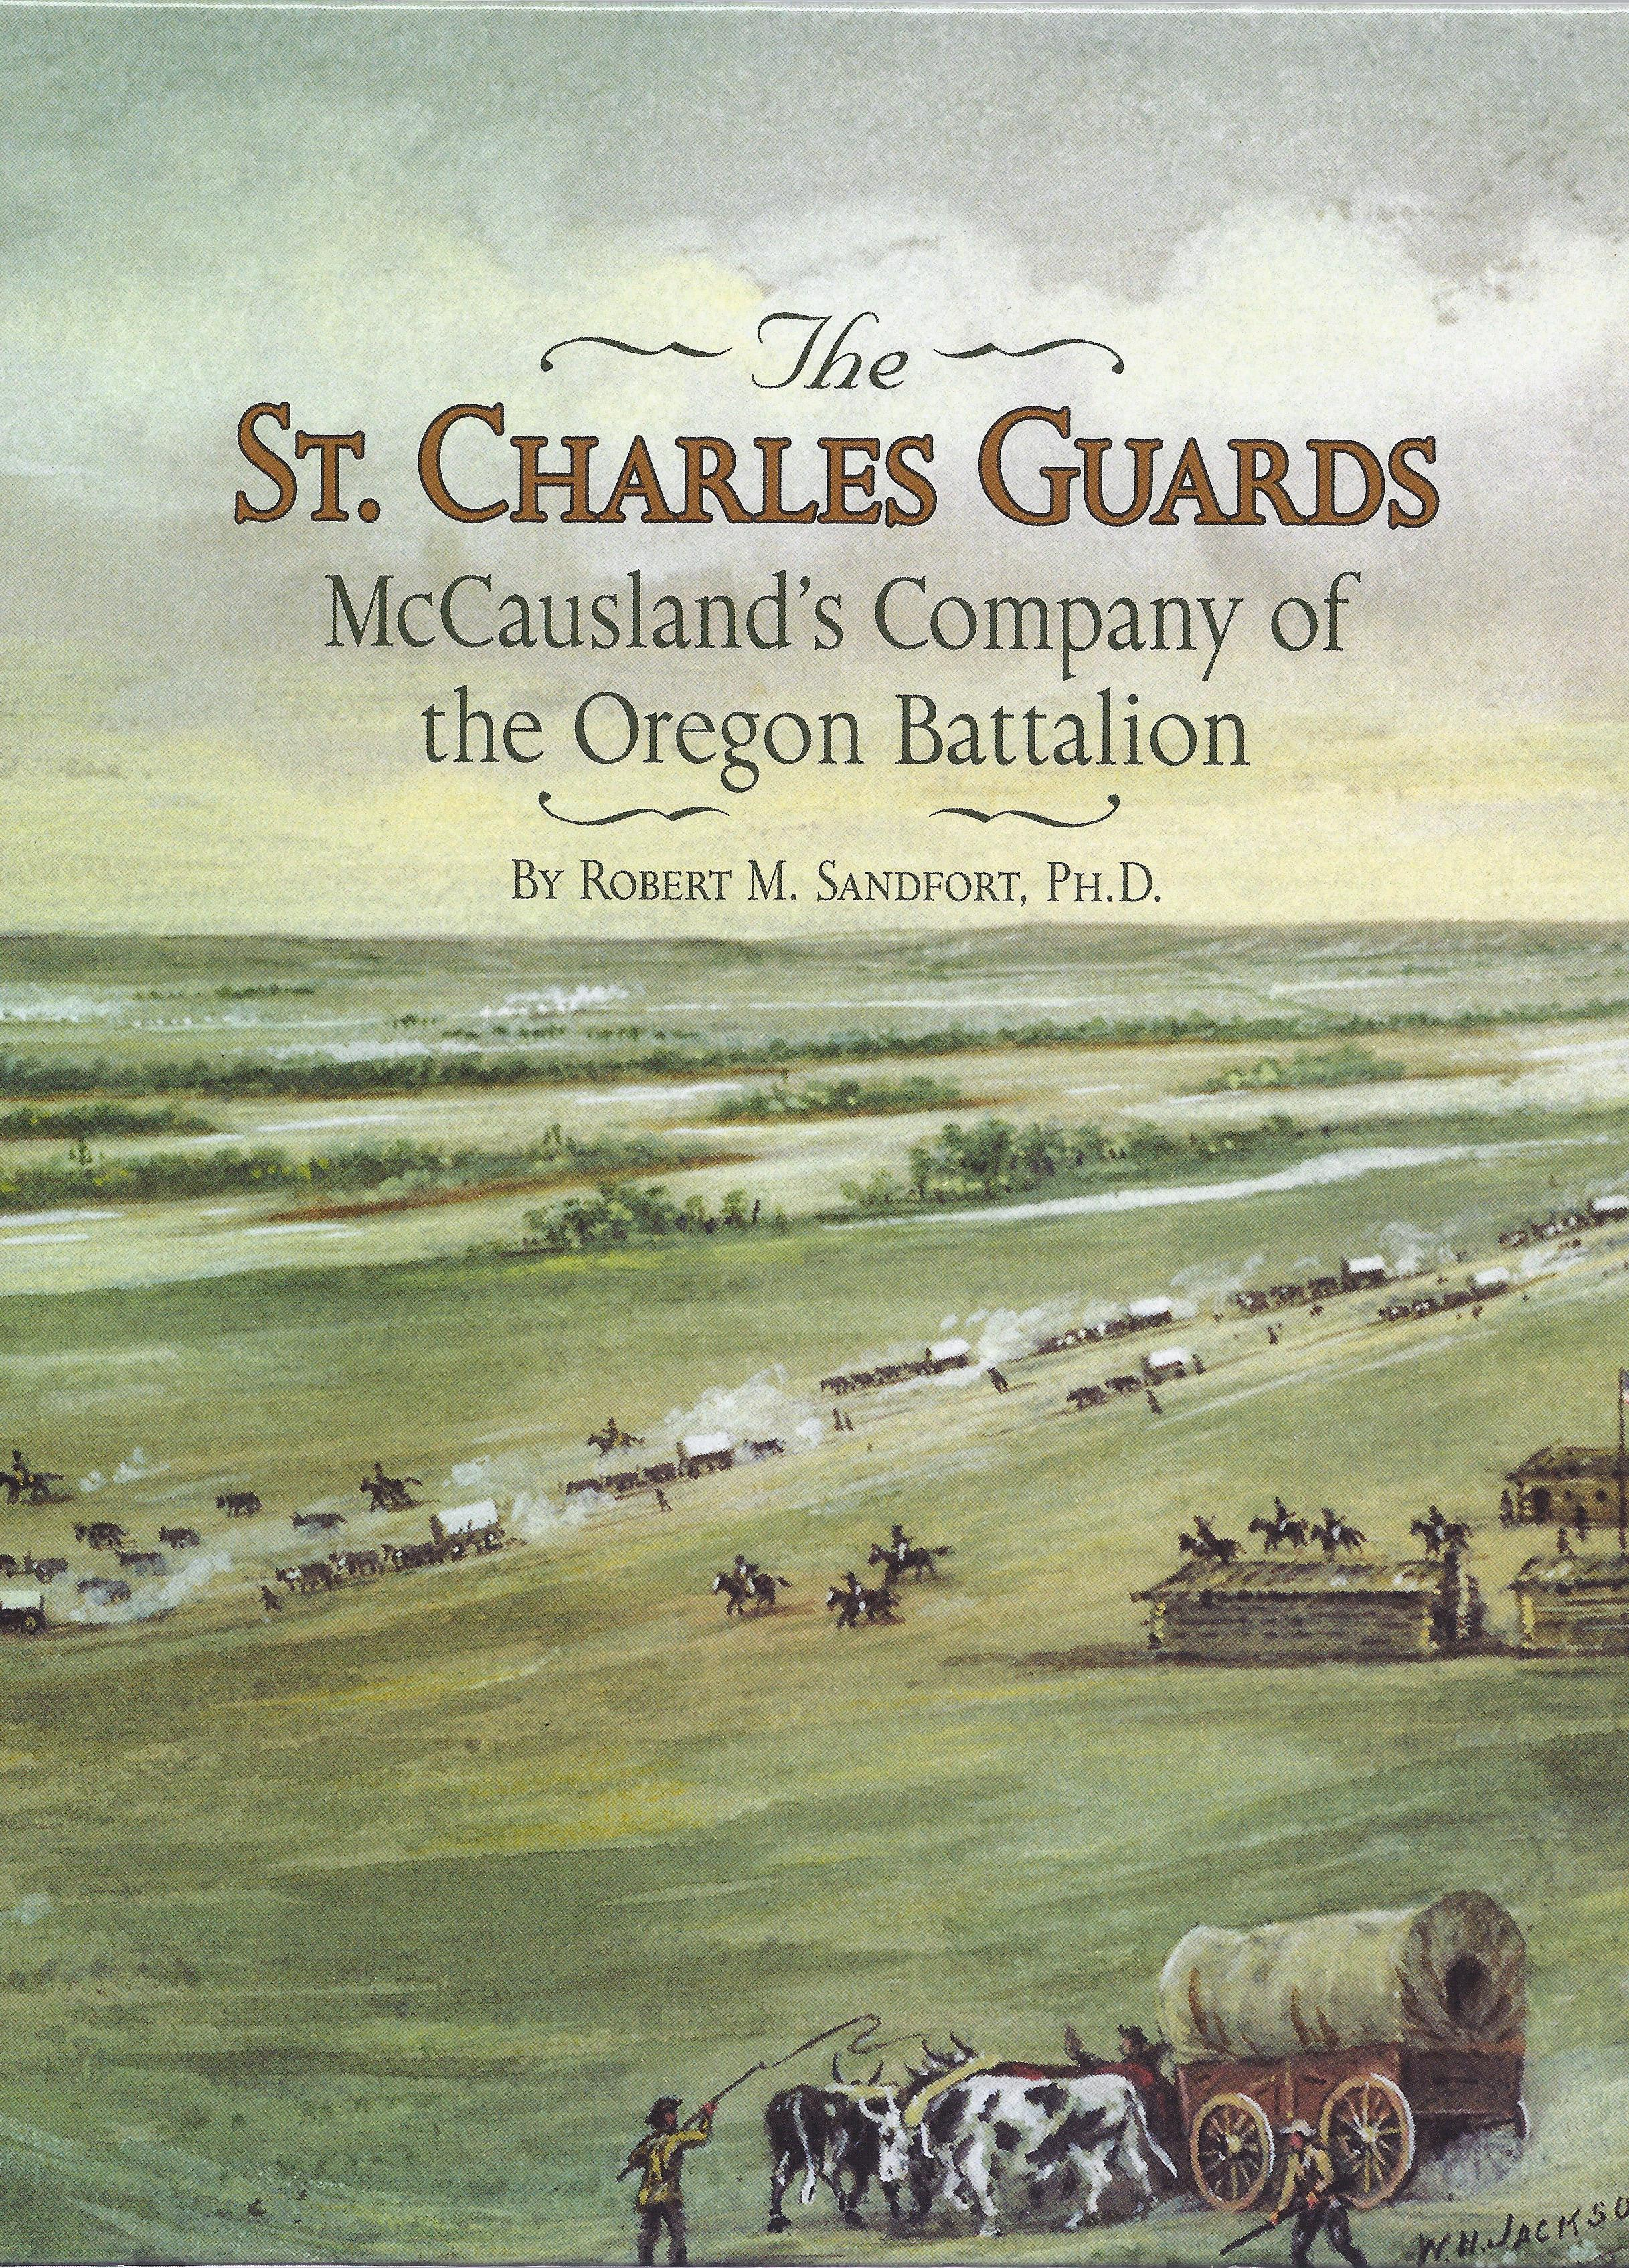 St. Charles Guards